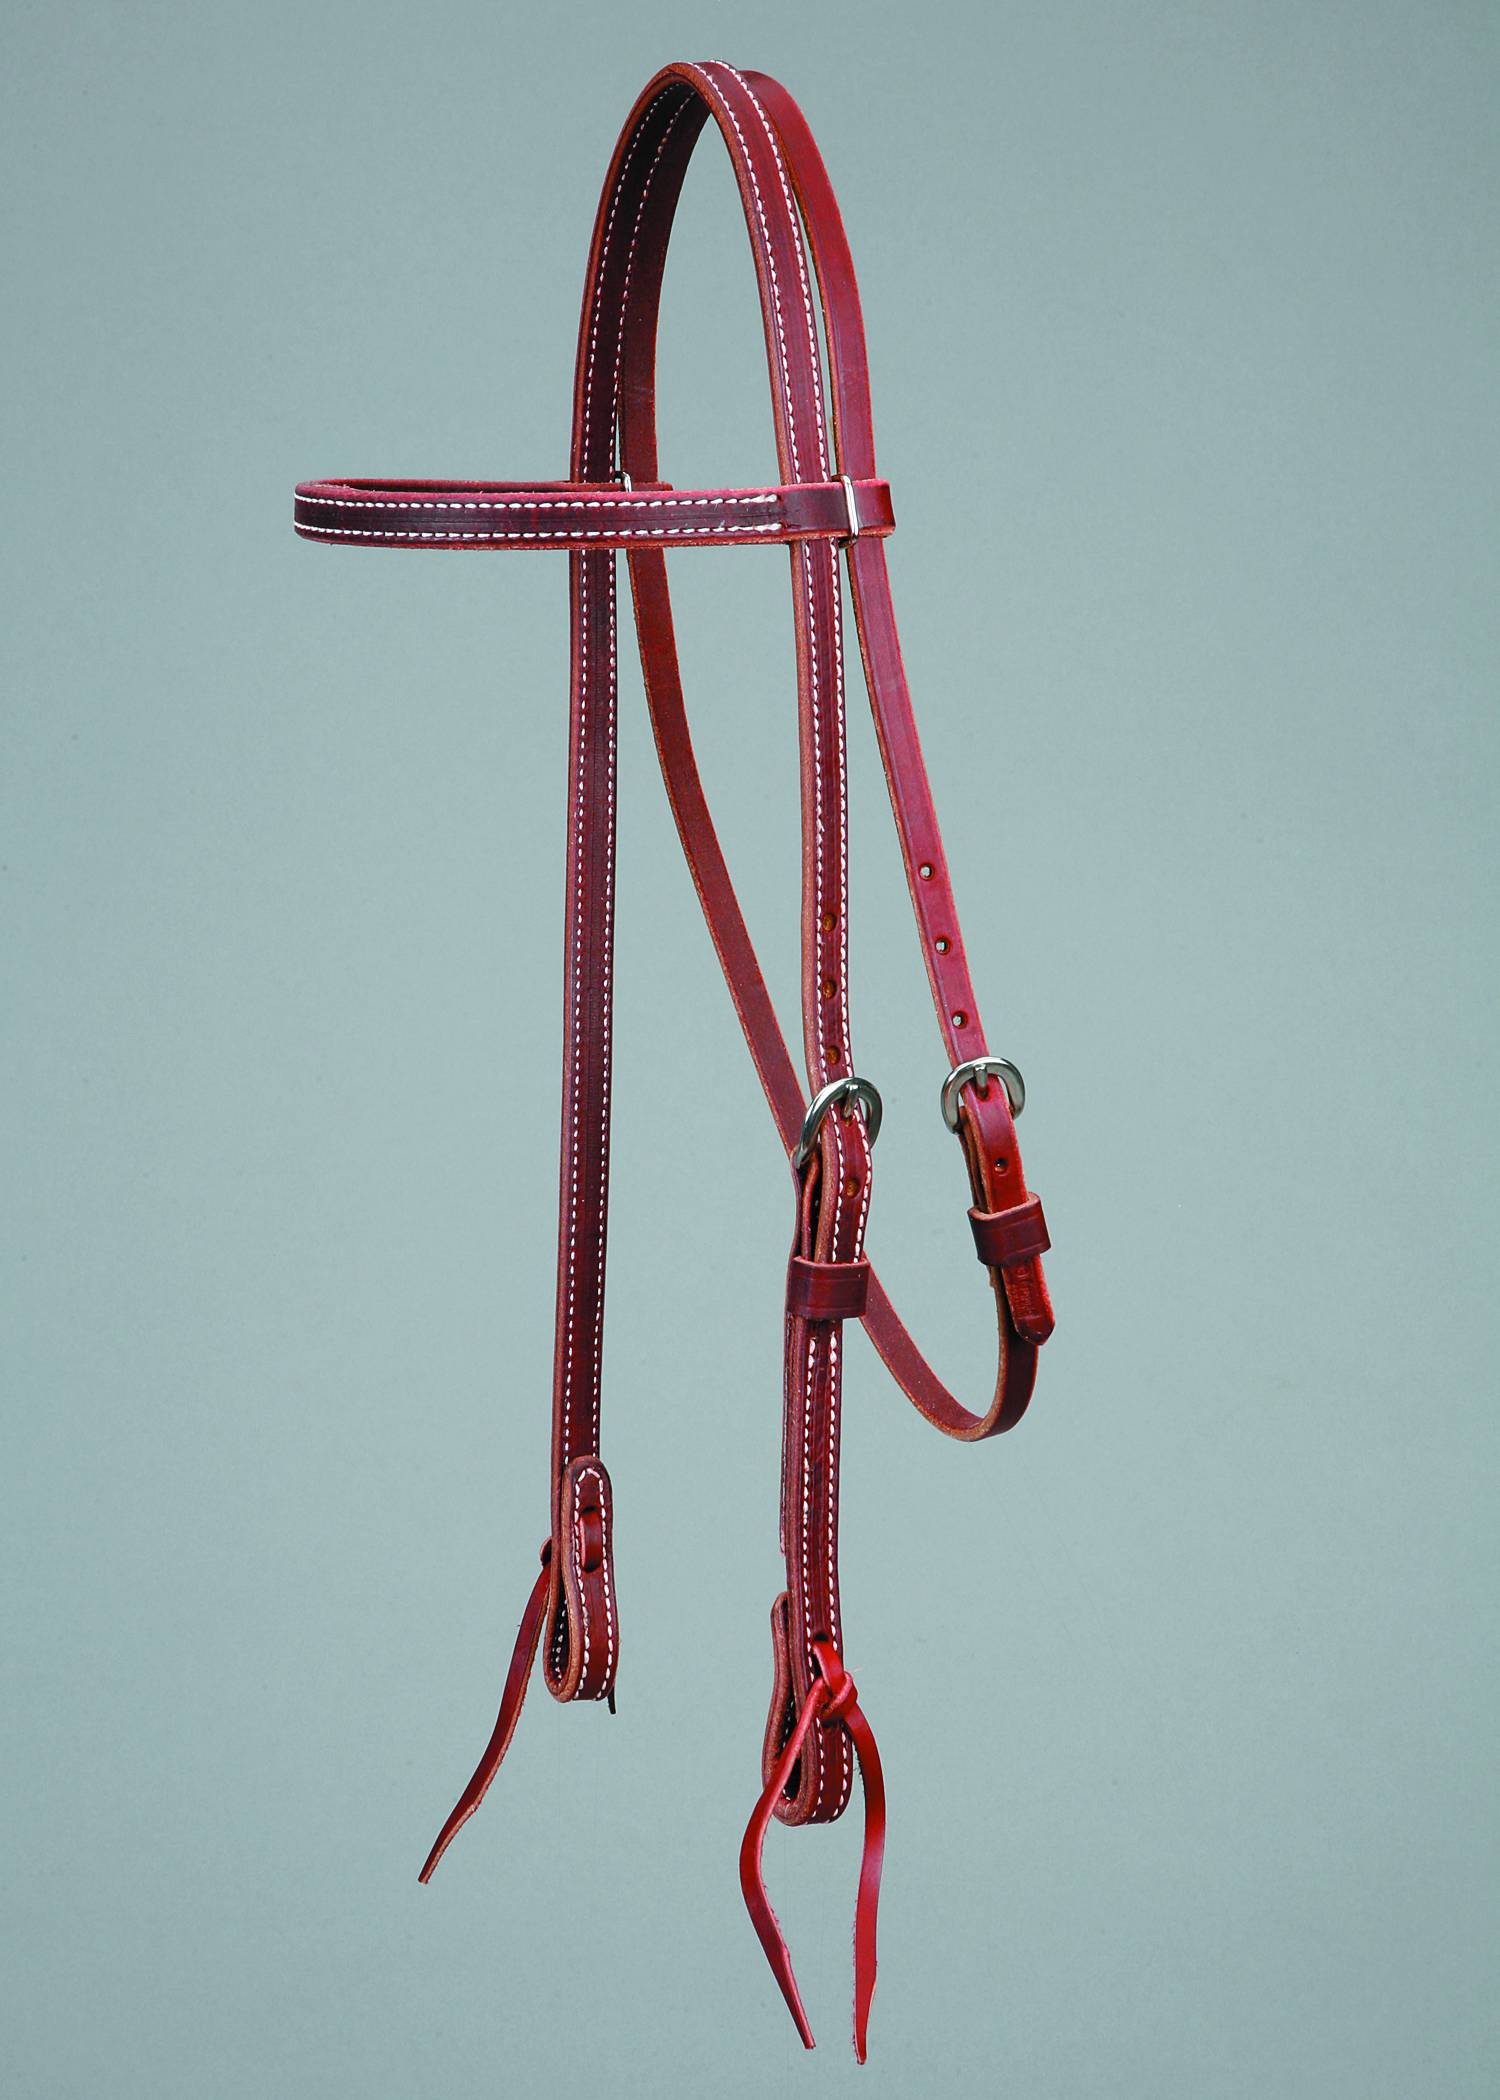 Colorado Saddlery Latigo Browband Headstall with Laced Bit Ends